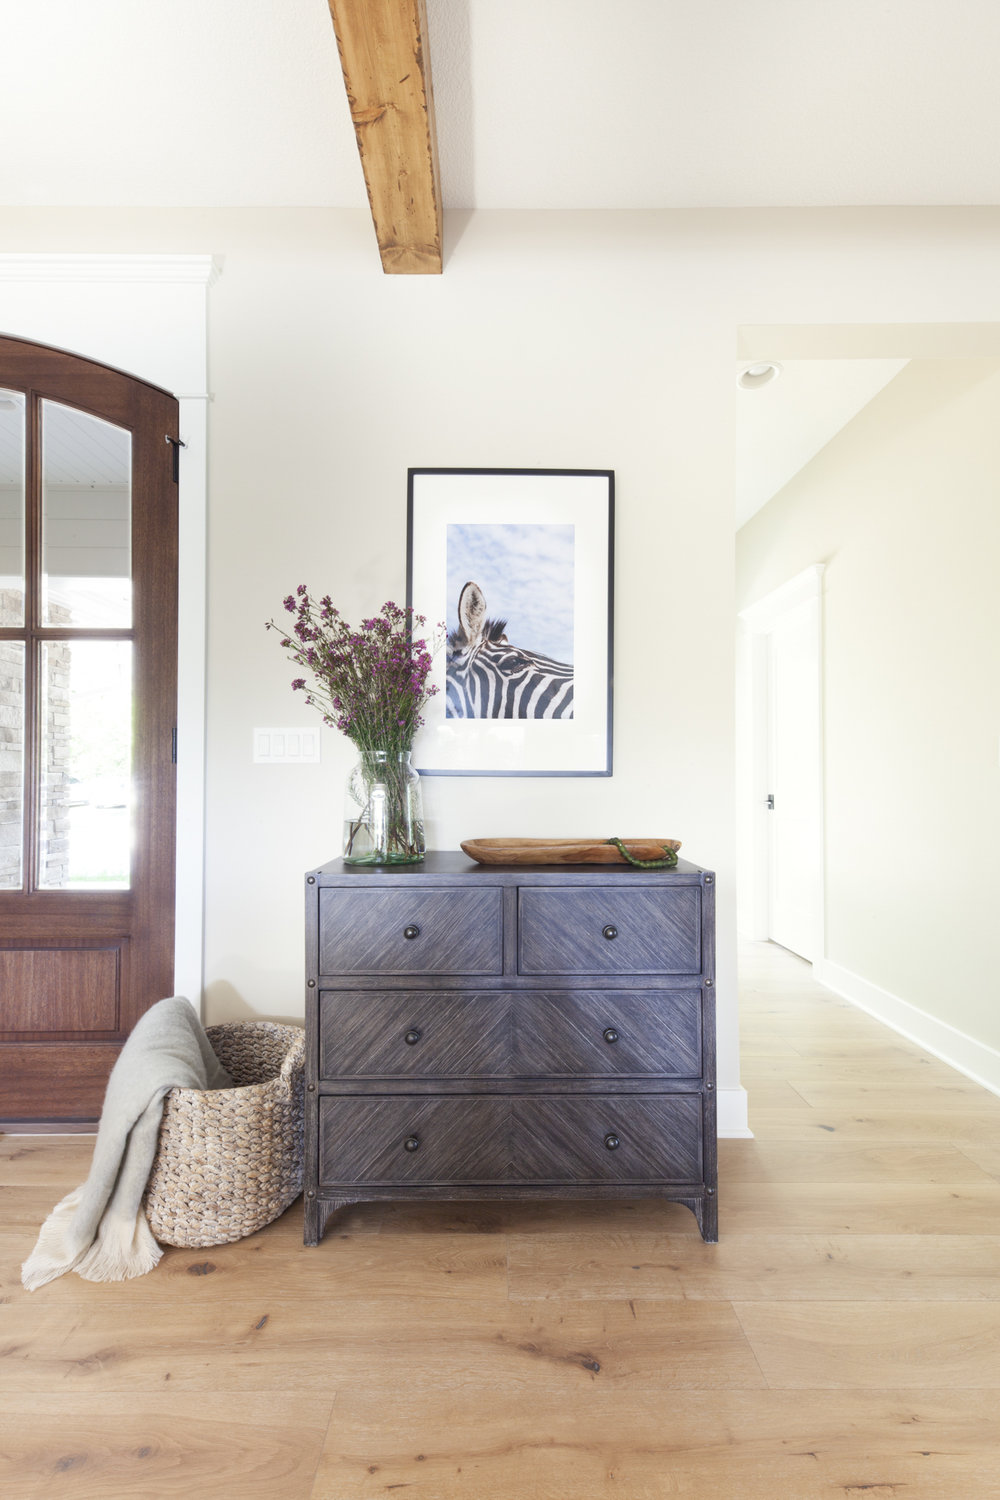 before-and-after-home-reveal-scout-and-nimble-lake-view-luxe-country-interior-design-entry-way-console-table-93.jpg